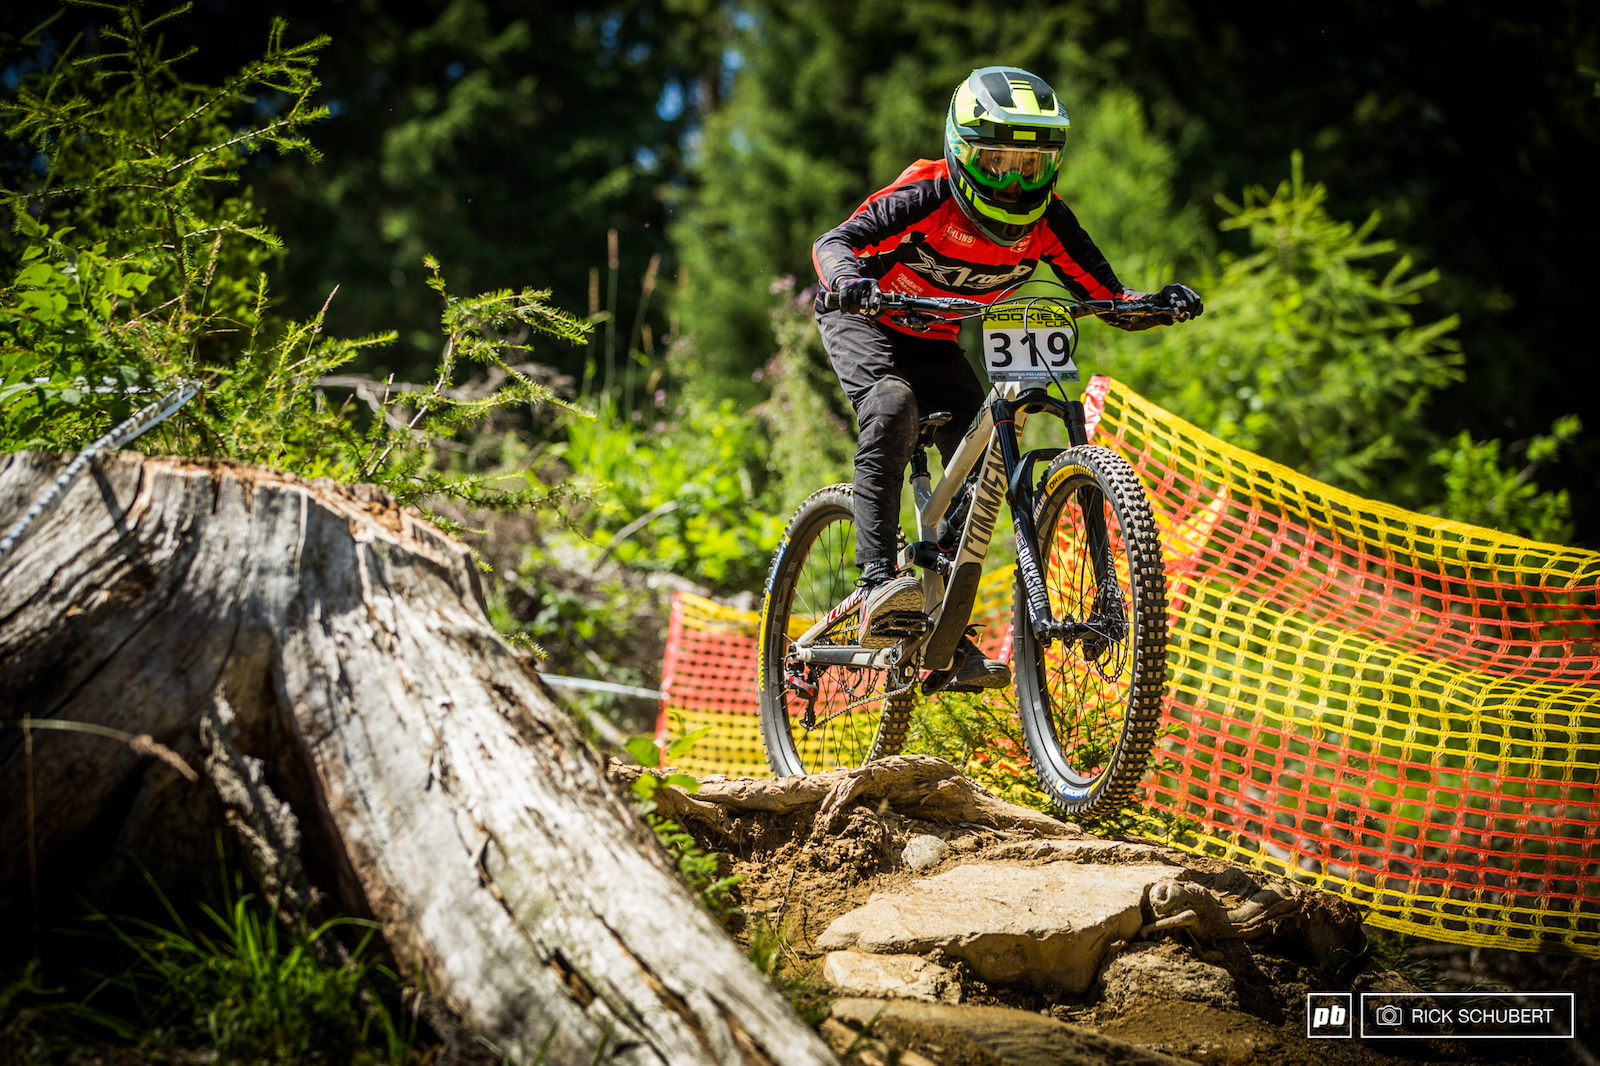 Till Alran s riding style was so impressive over the weekend. No wonder he won the Boys U13